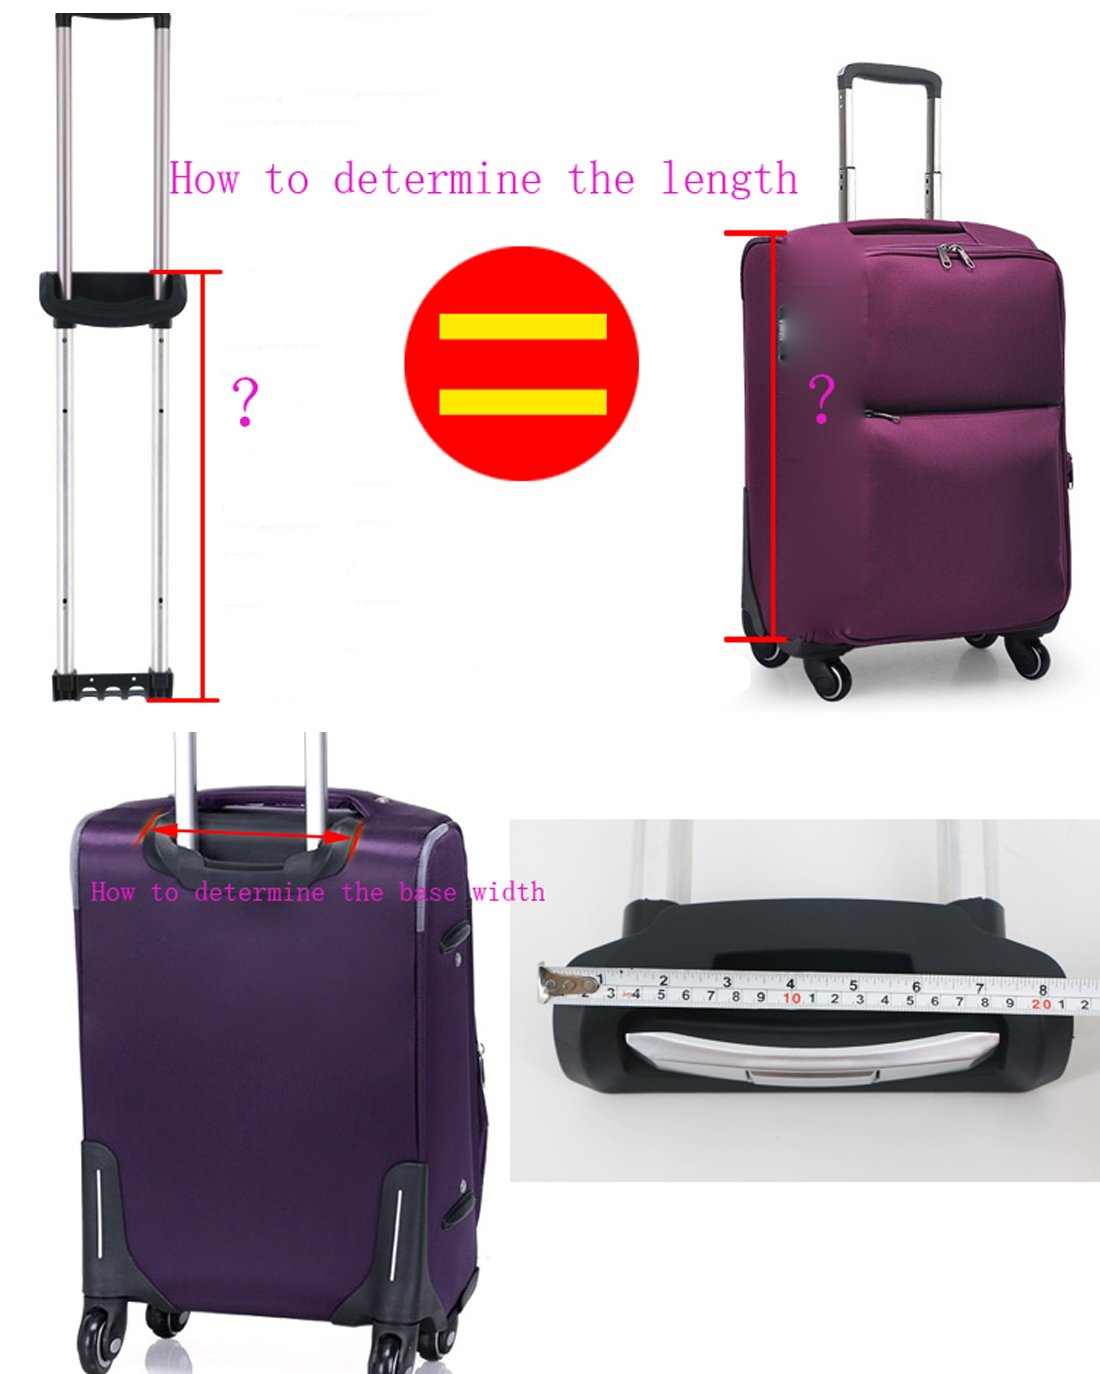 SuperMa Replacement Luggage Telescopic Handle Suitcase Spare Part Pull Out Handle (G002-20 inch) by Super Ma (Image #8)